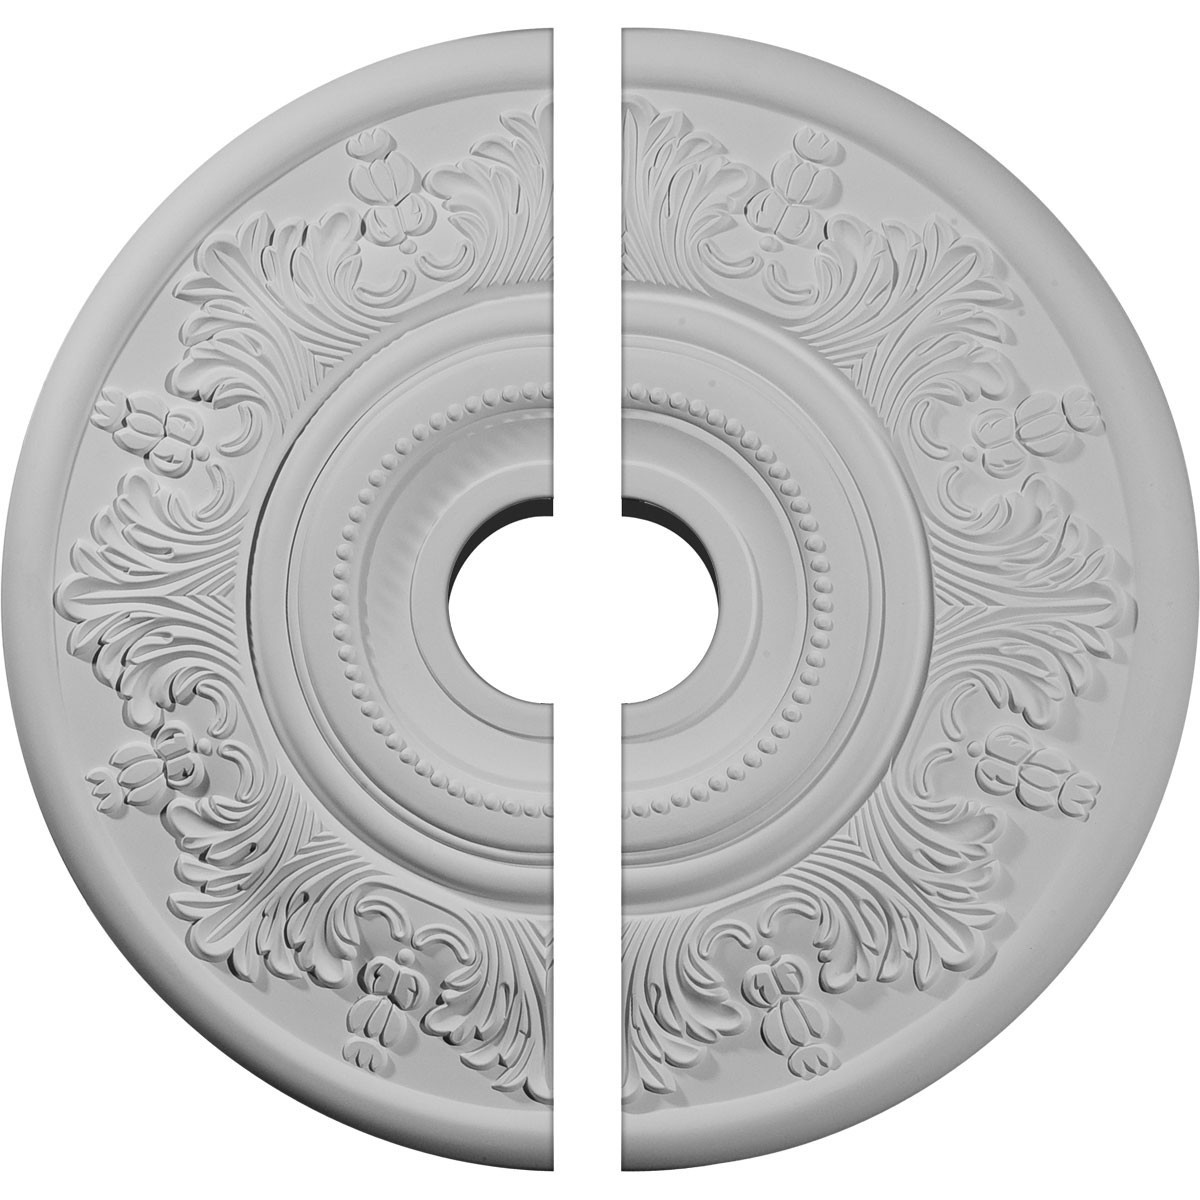 """EM-CM20VI2 - 20""""OD x 3 1/2""""ID x 1 1/2""""P Vienna Ceiling Medallion, Two Piece (Fits Canopies up to 6 1/2"""")"""